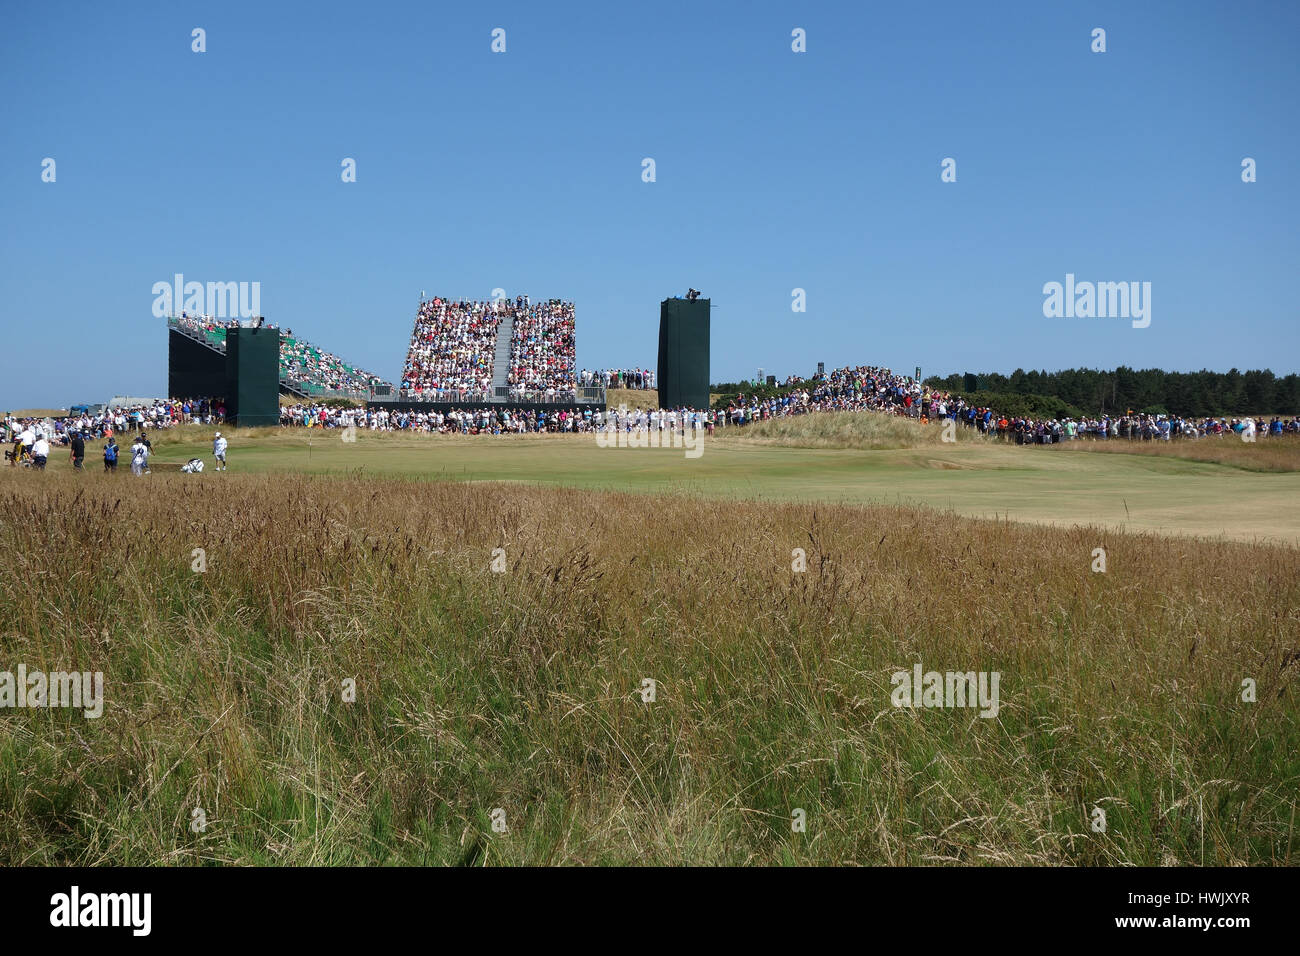 10TH HOLE GANTRY THE OPEN CHAMPIONSHIP THE OPEN CHAMPIONSHIP MUIRFIELD EAST LOTHIAN SCOTLAND 19 July 2013 - Stock Image